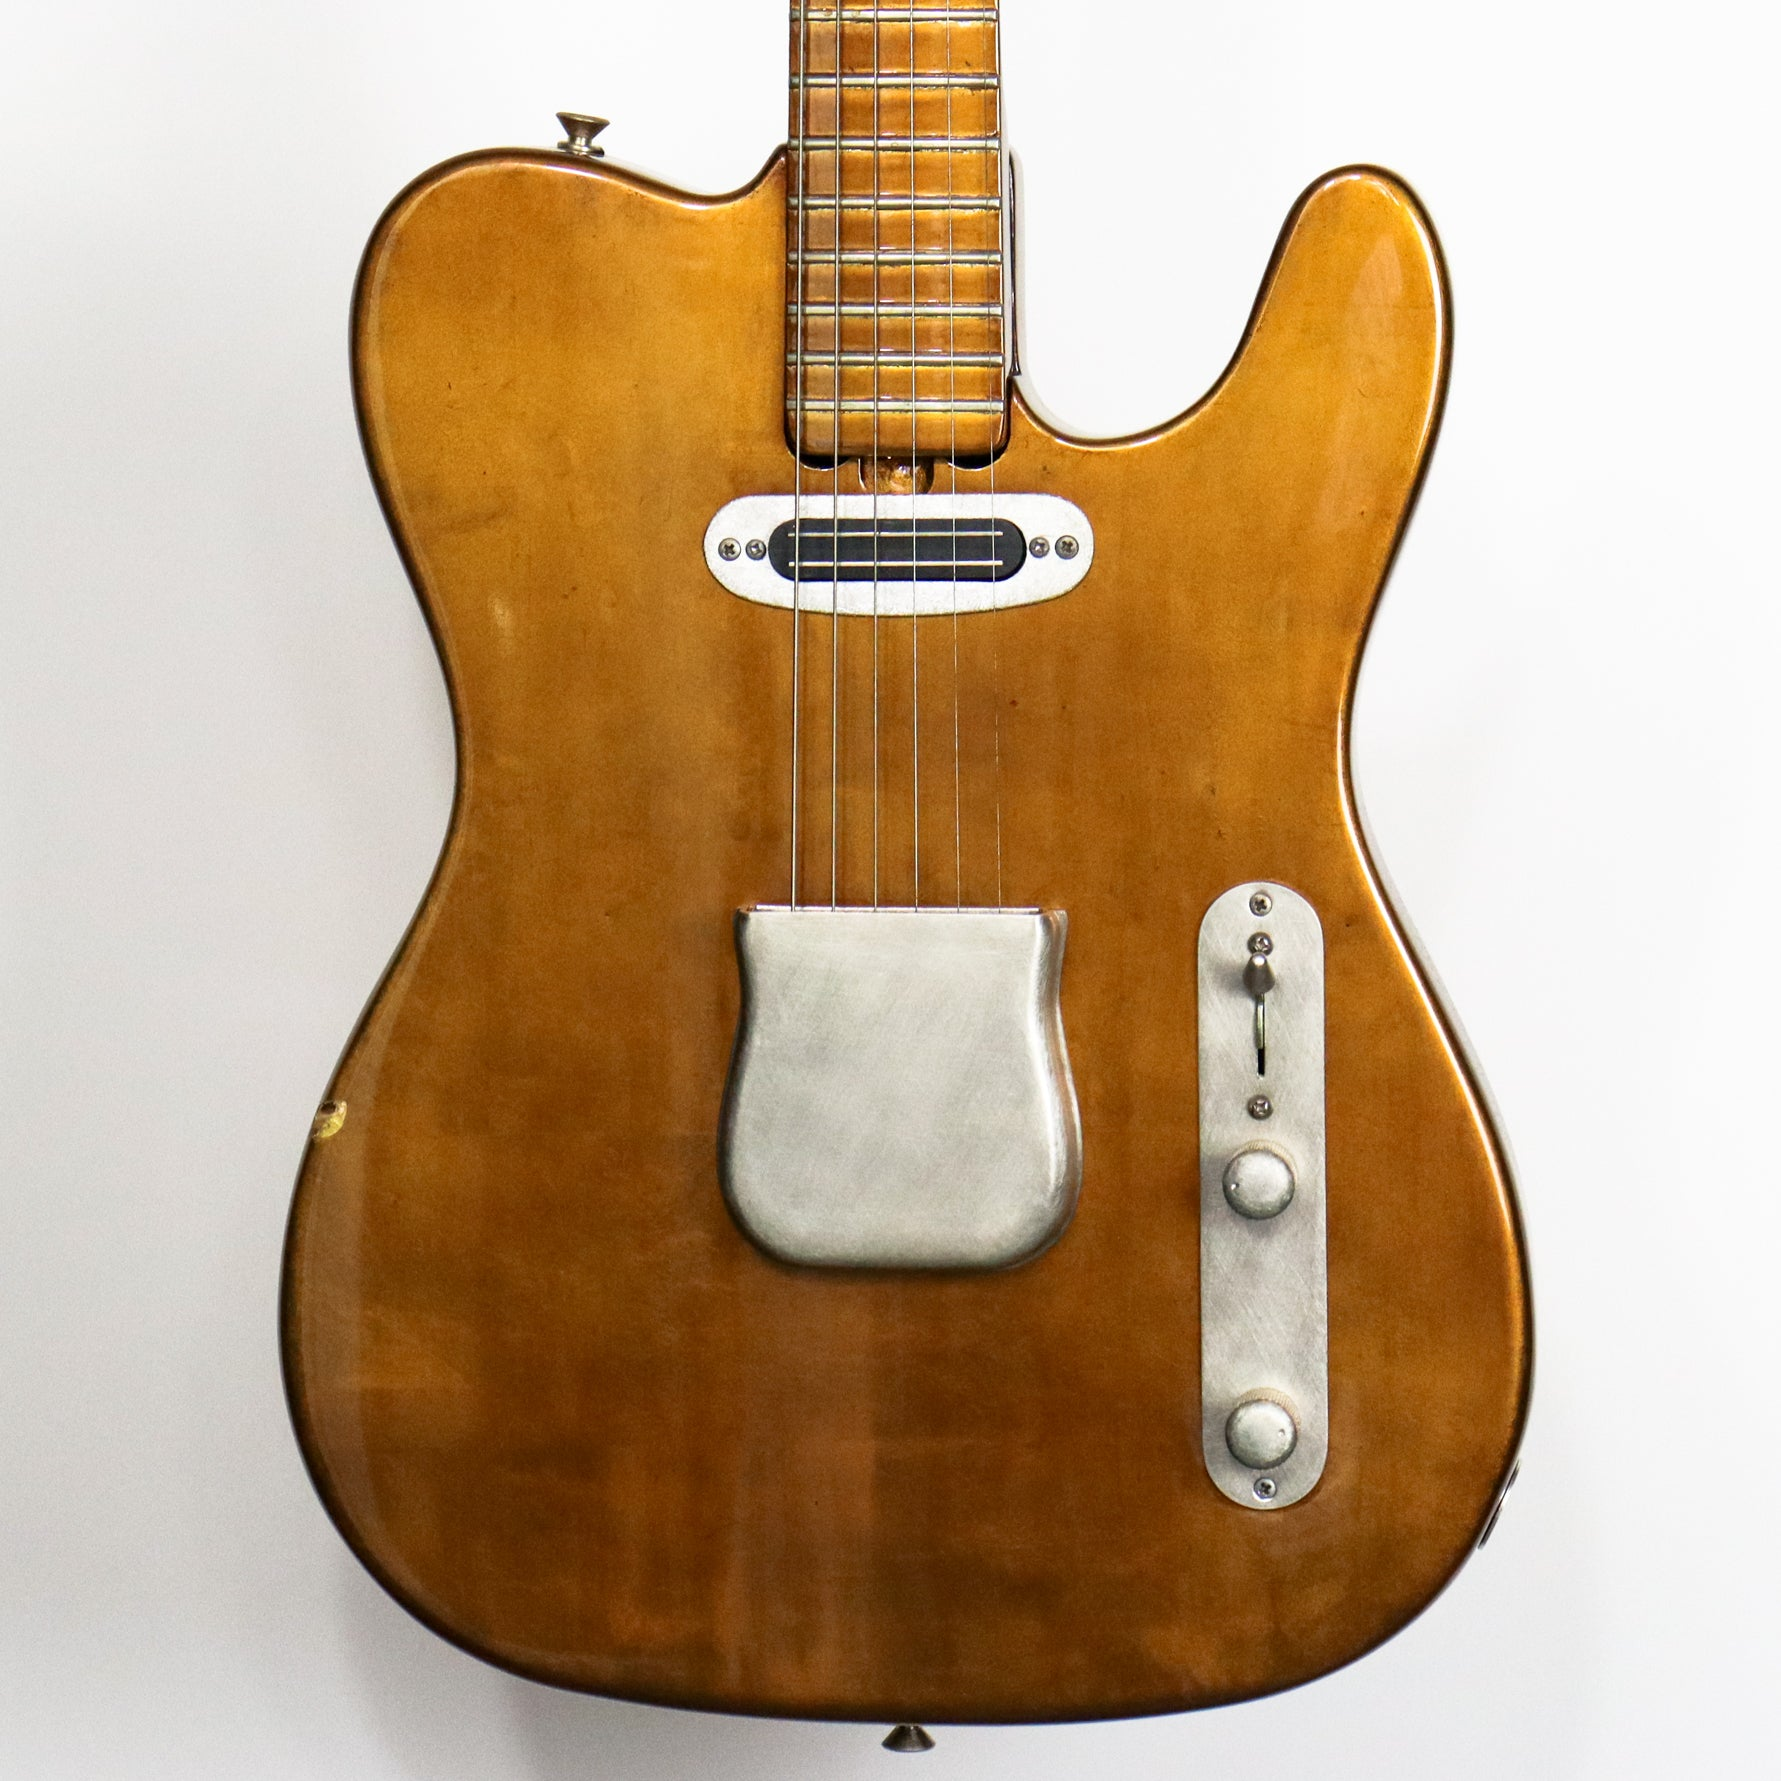 Fender 1970s Telecaster Custom Gold Leaf Re-finish